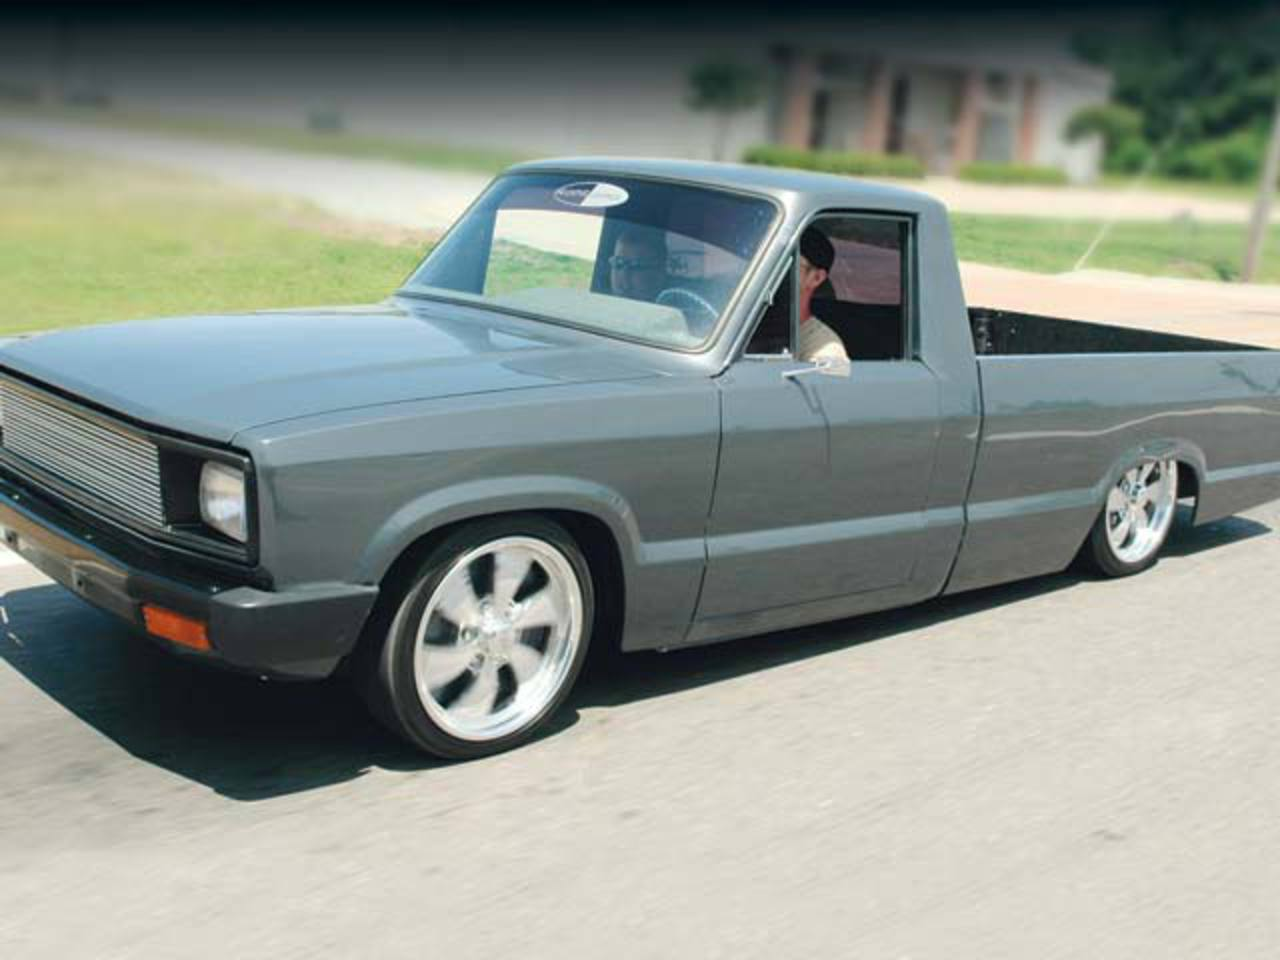 Mazda B2000 - huge collection of cars, auto news and reviews, car vitals,